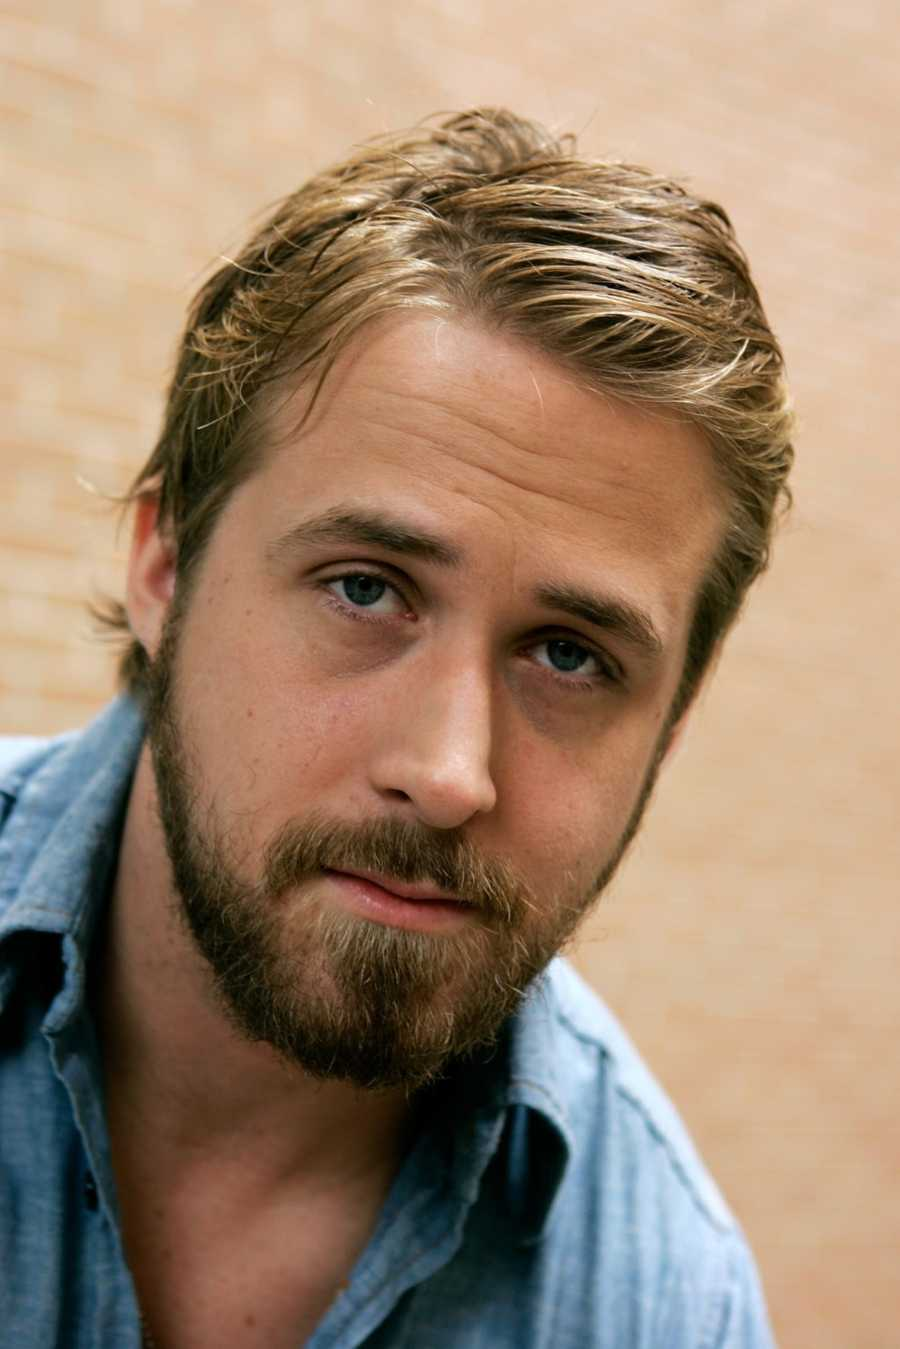 05) Ryan - 431 (Ryan Gosling is a Canadian actor and musician.)